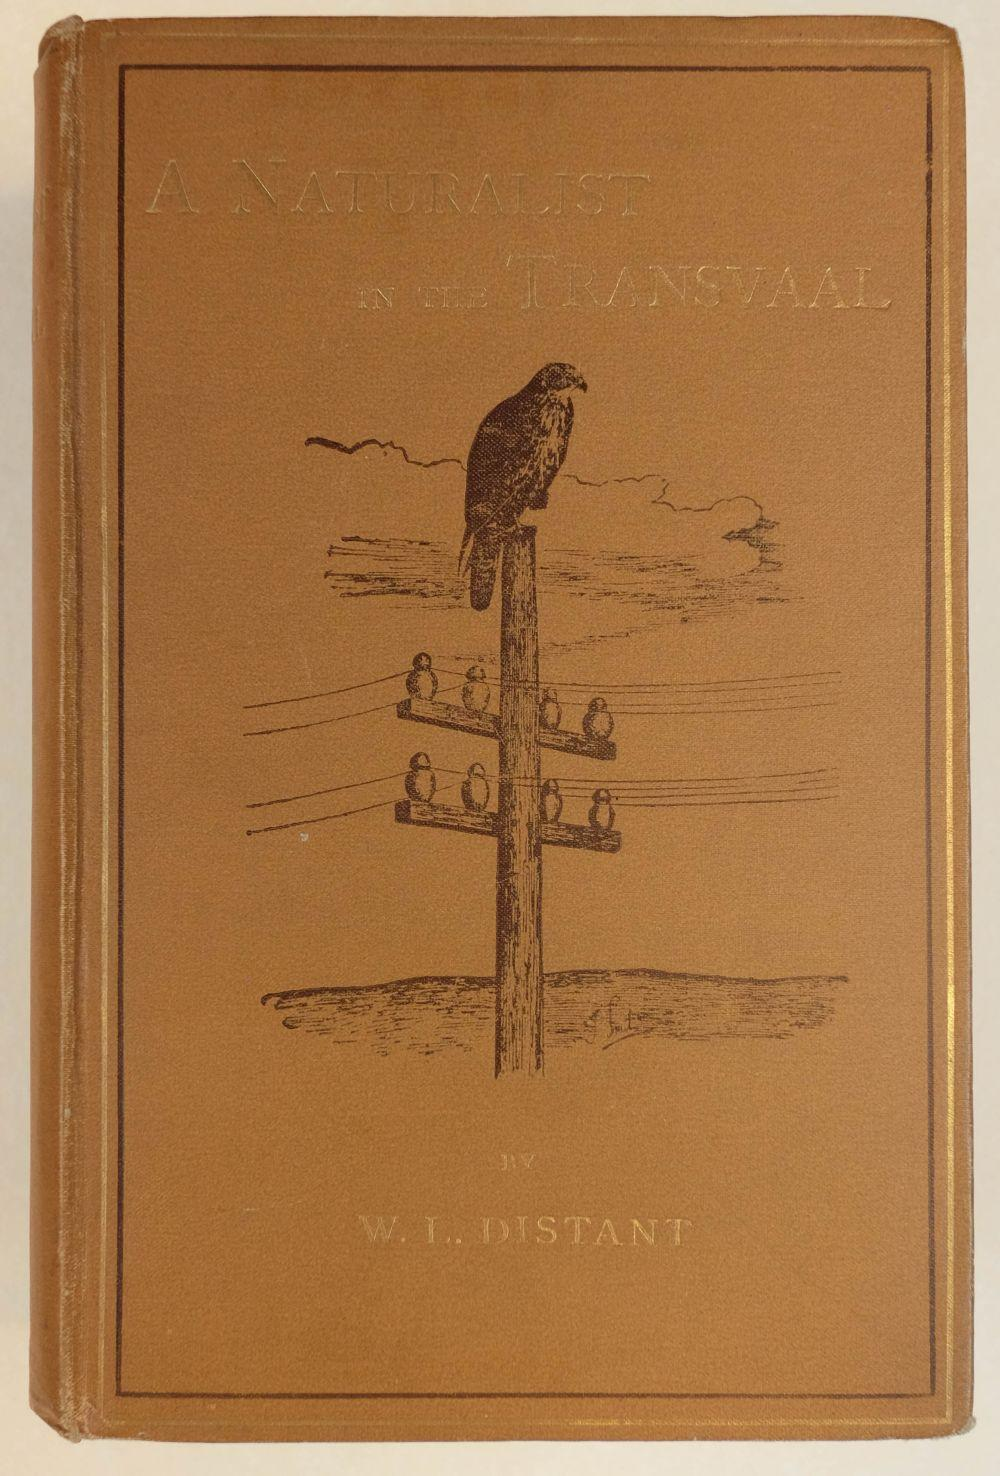 Distant (William Lucas). A Naturalist in the Transvaal, first edition, R.H. Porter, 1892